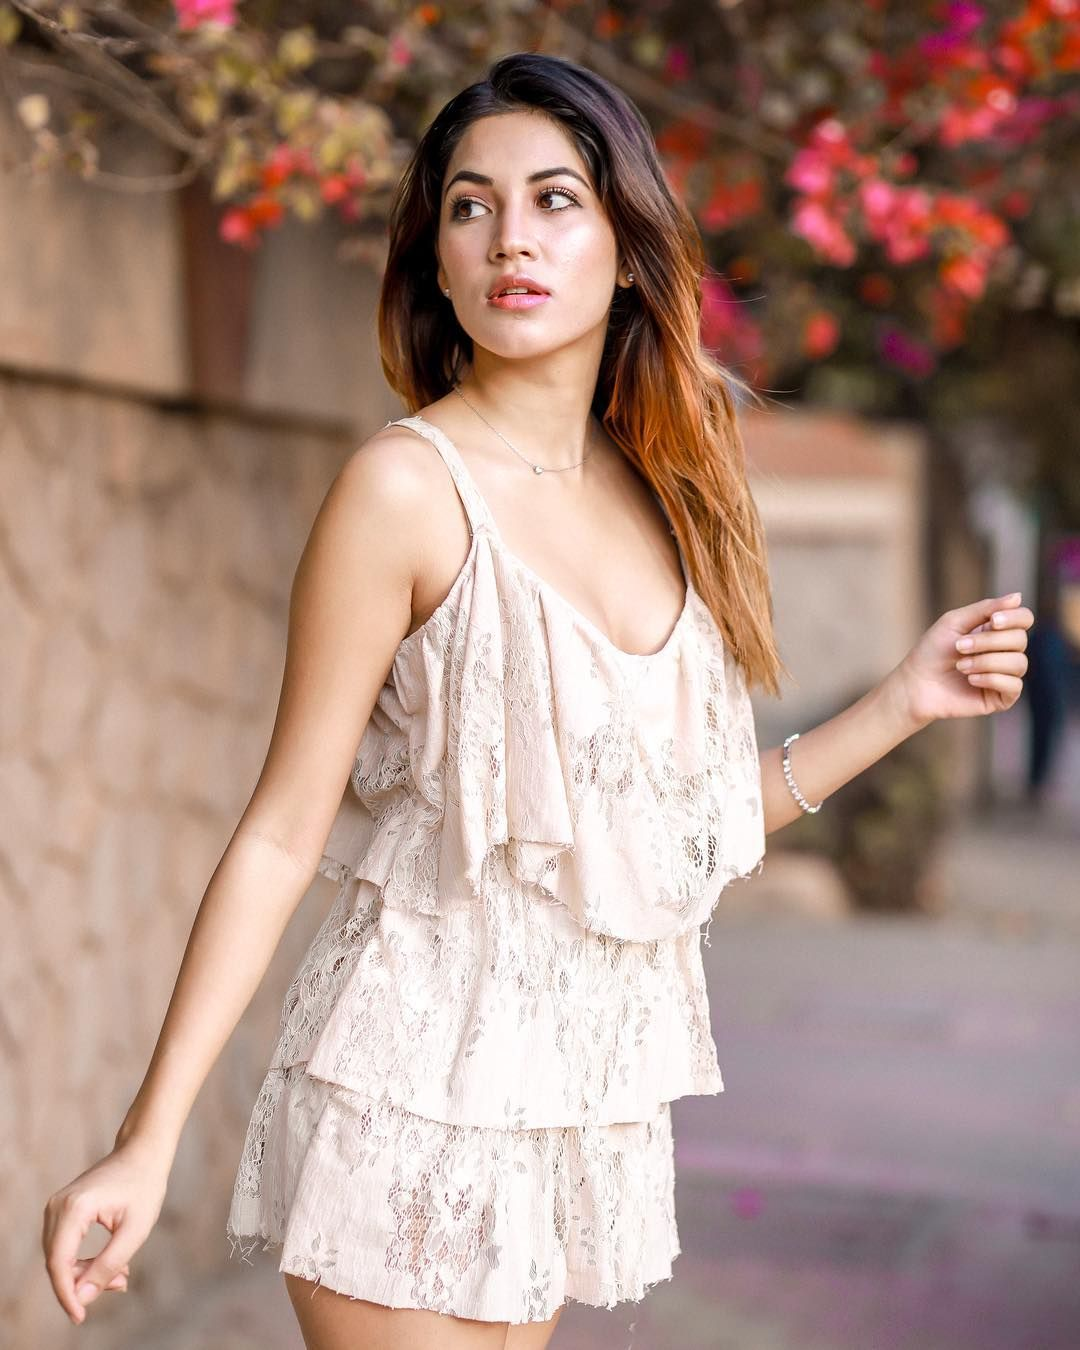 230 Shivani Singh (Model) ideas | singh, model, fashion